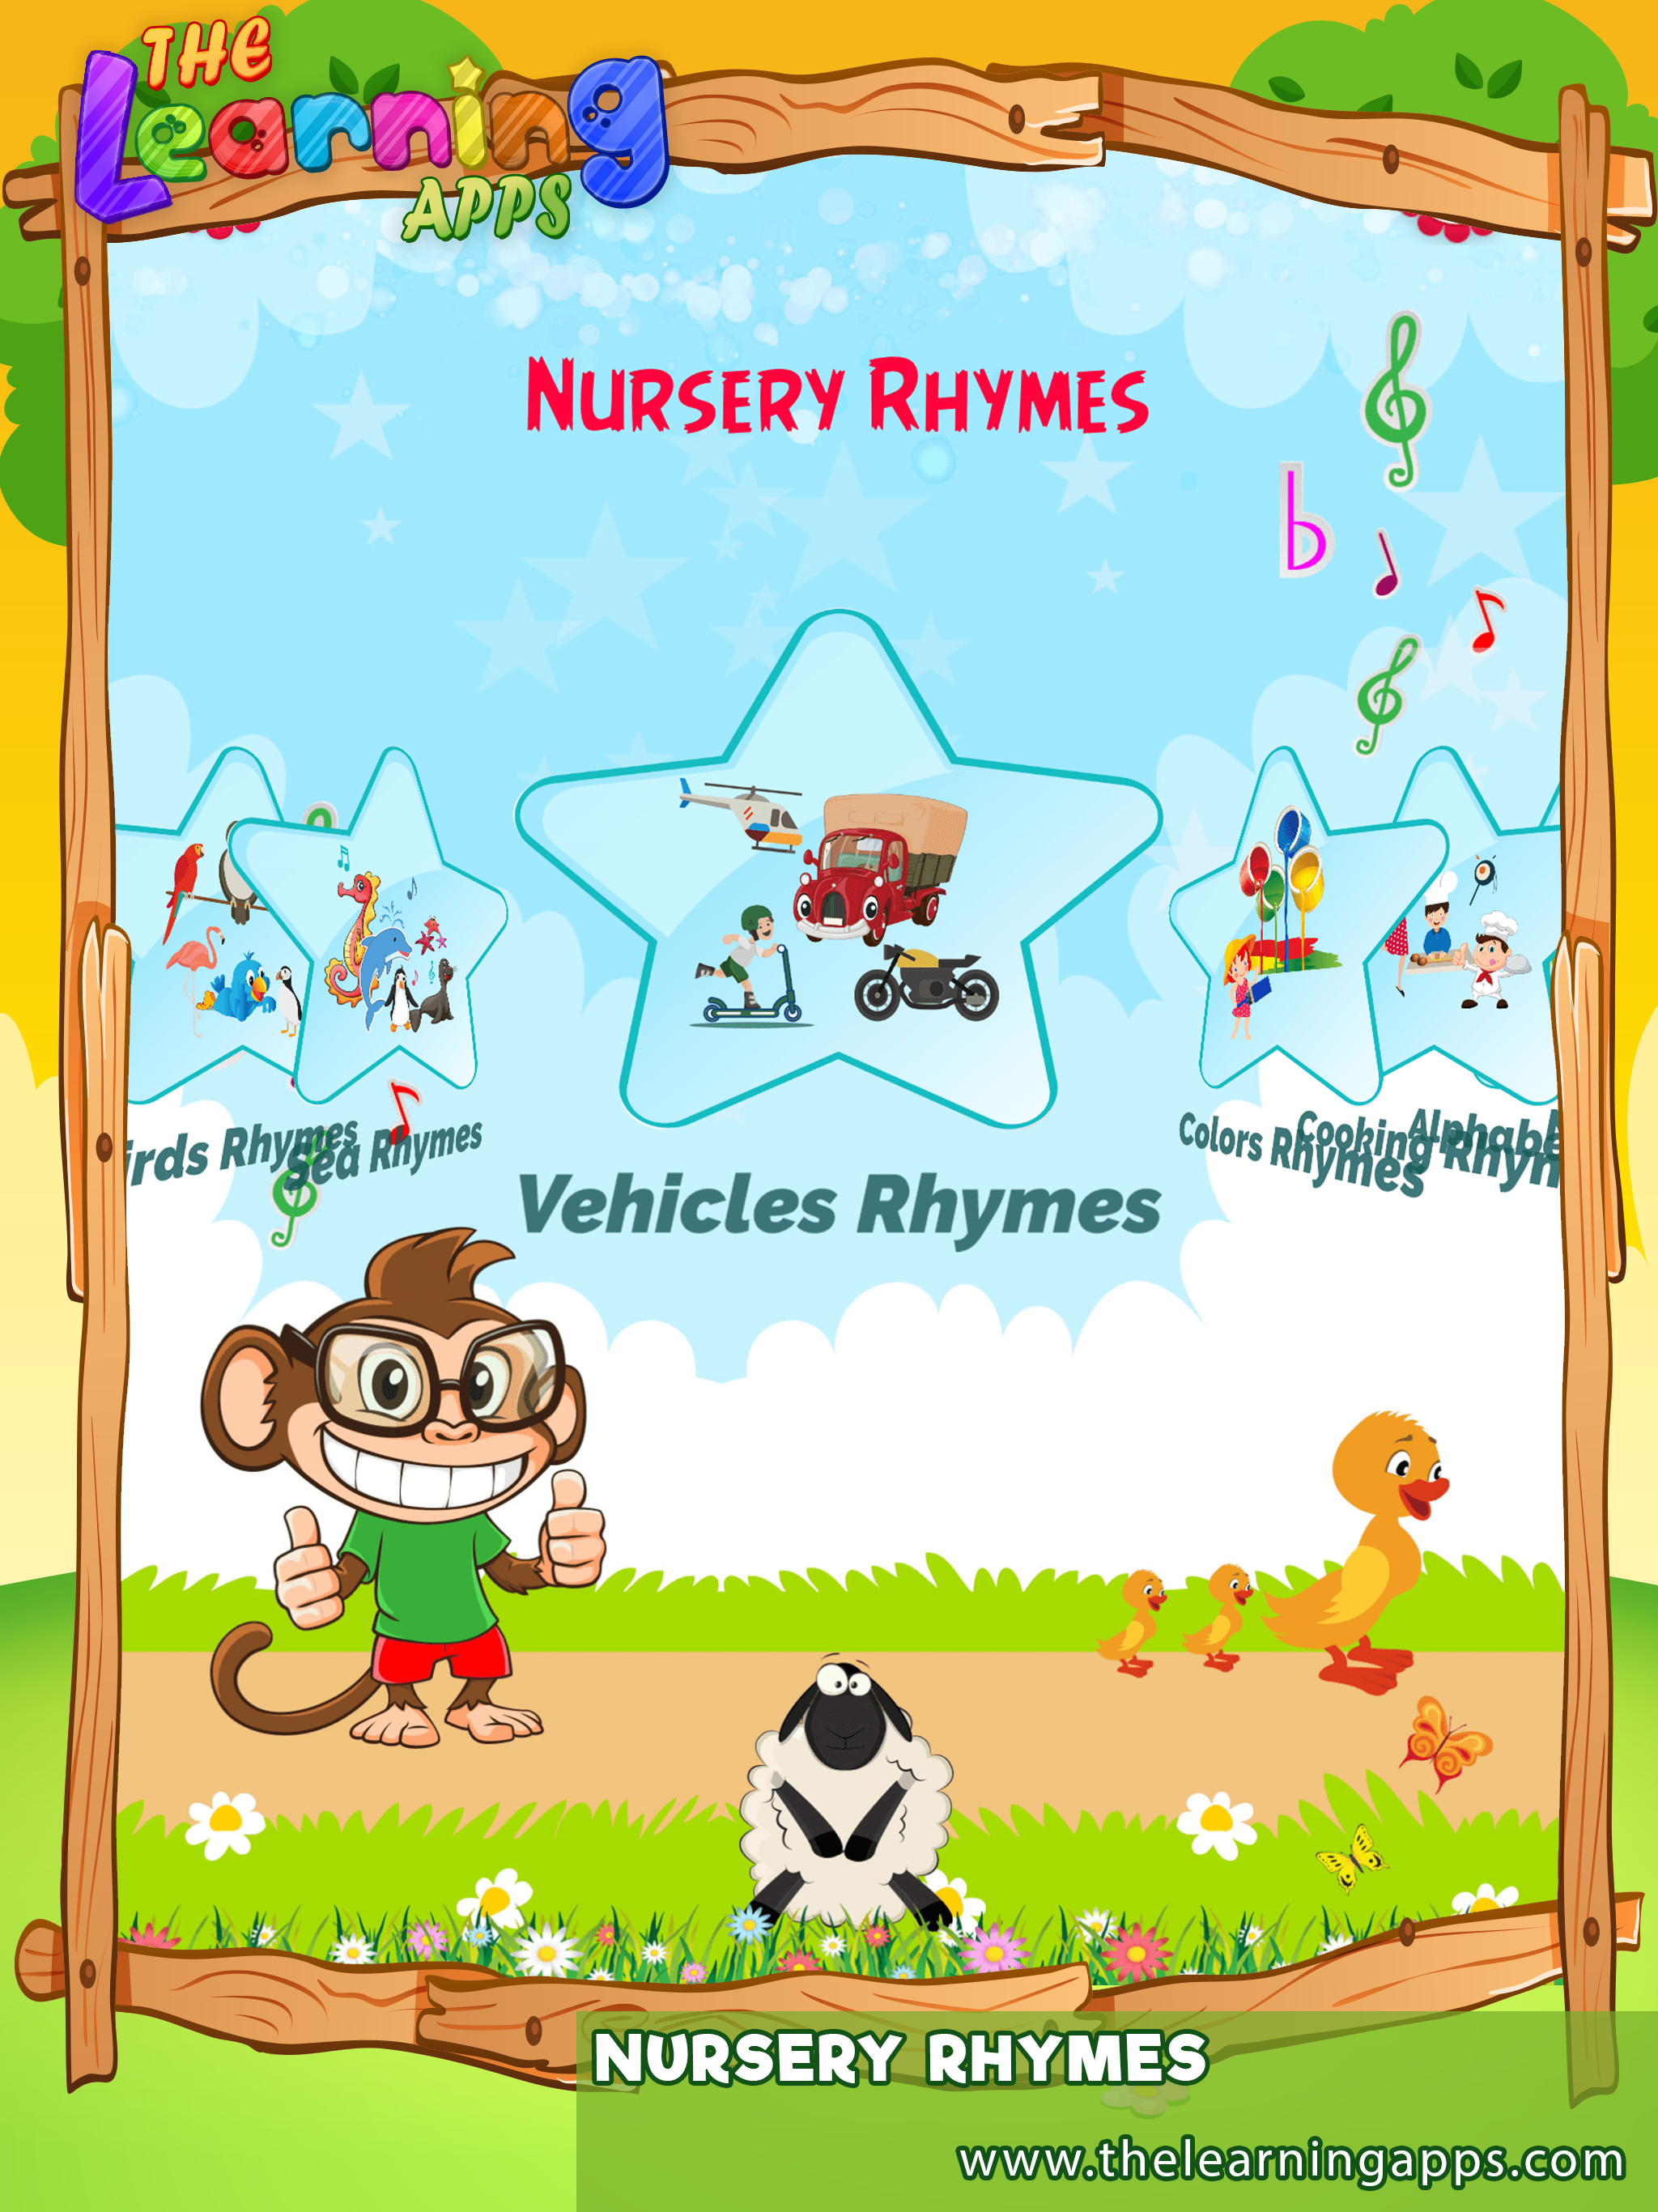 Let Your Children Listen To All The Nursery Rhymes Learn Nurseryrhymes Cars Animals Colors Kids Learning Listening